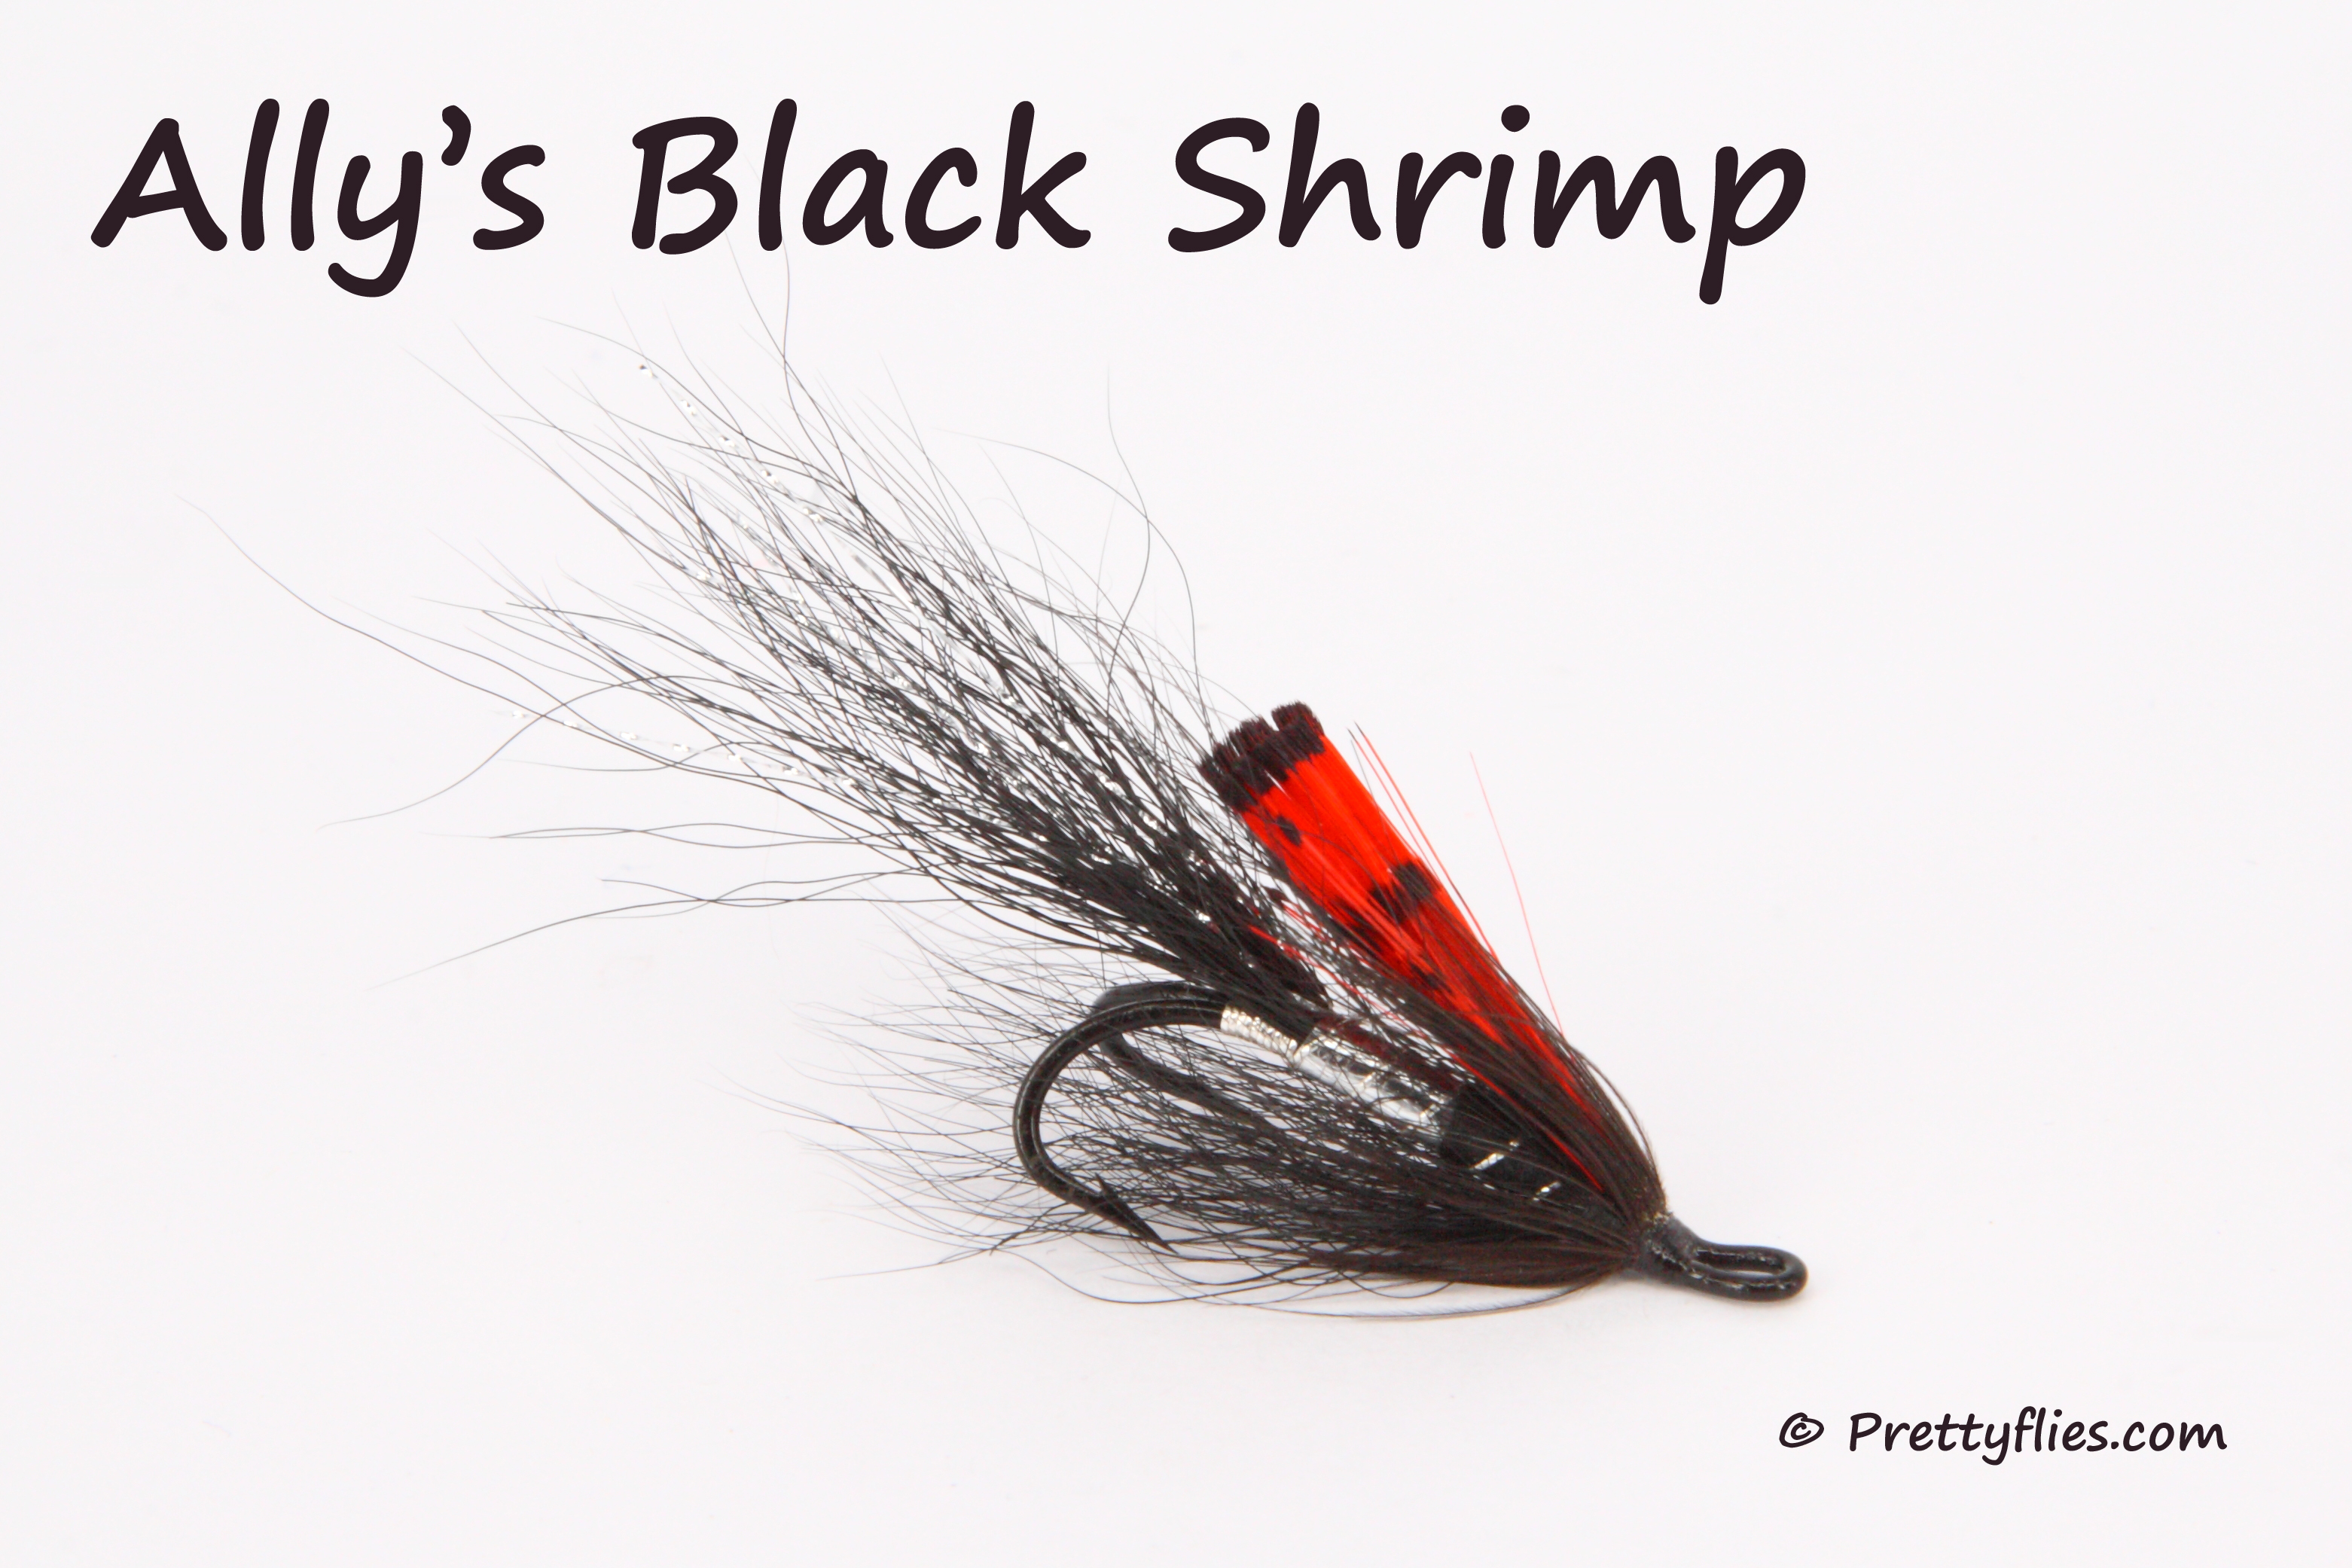 Allys Black Shrimp copy.jpg